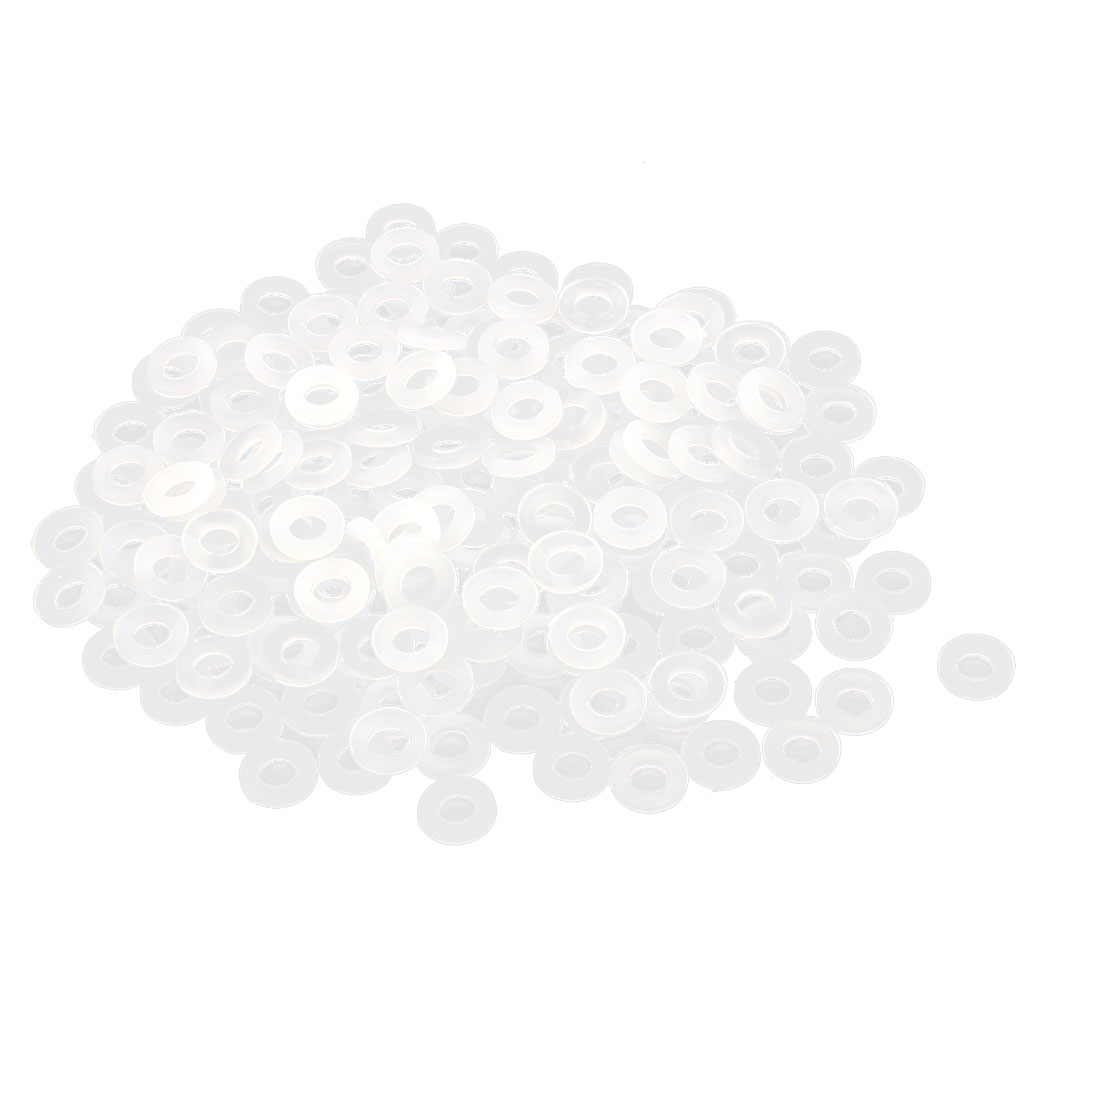 White Round Insulation Nylon Spacer Flat Washer Gasket Ring 3 x 6 x 1mm 100pcs